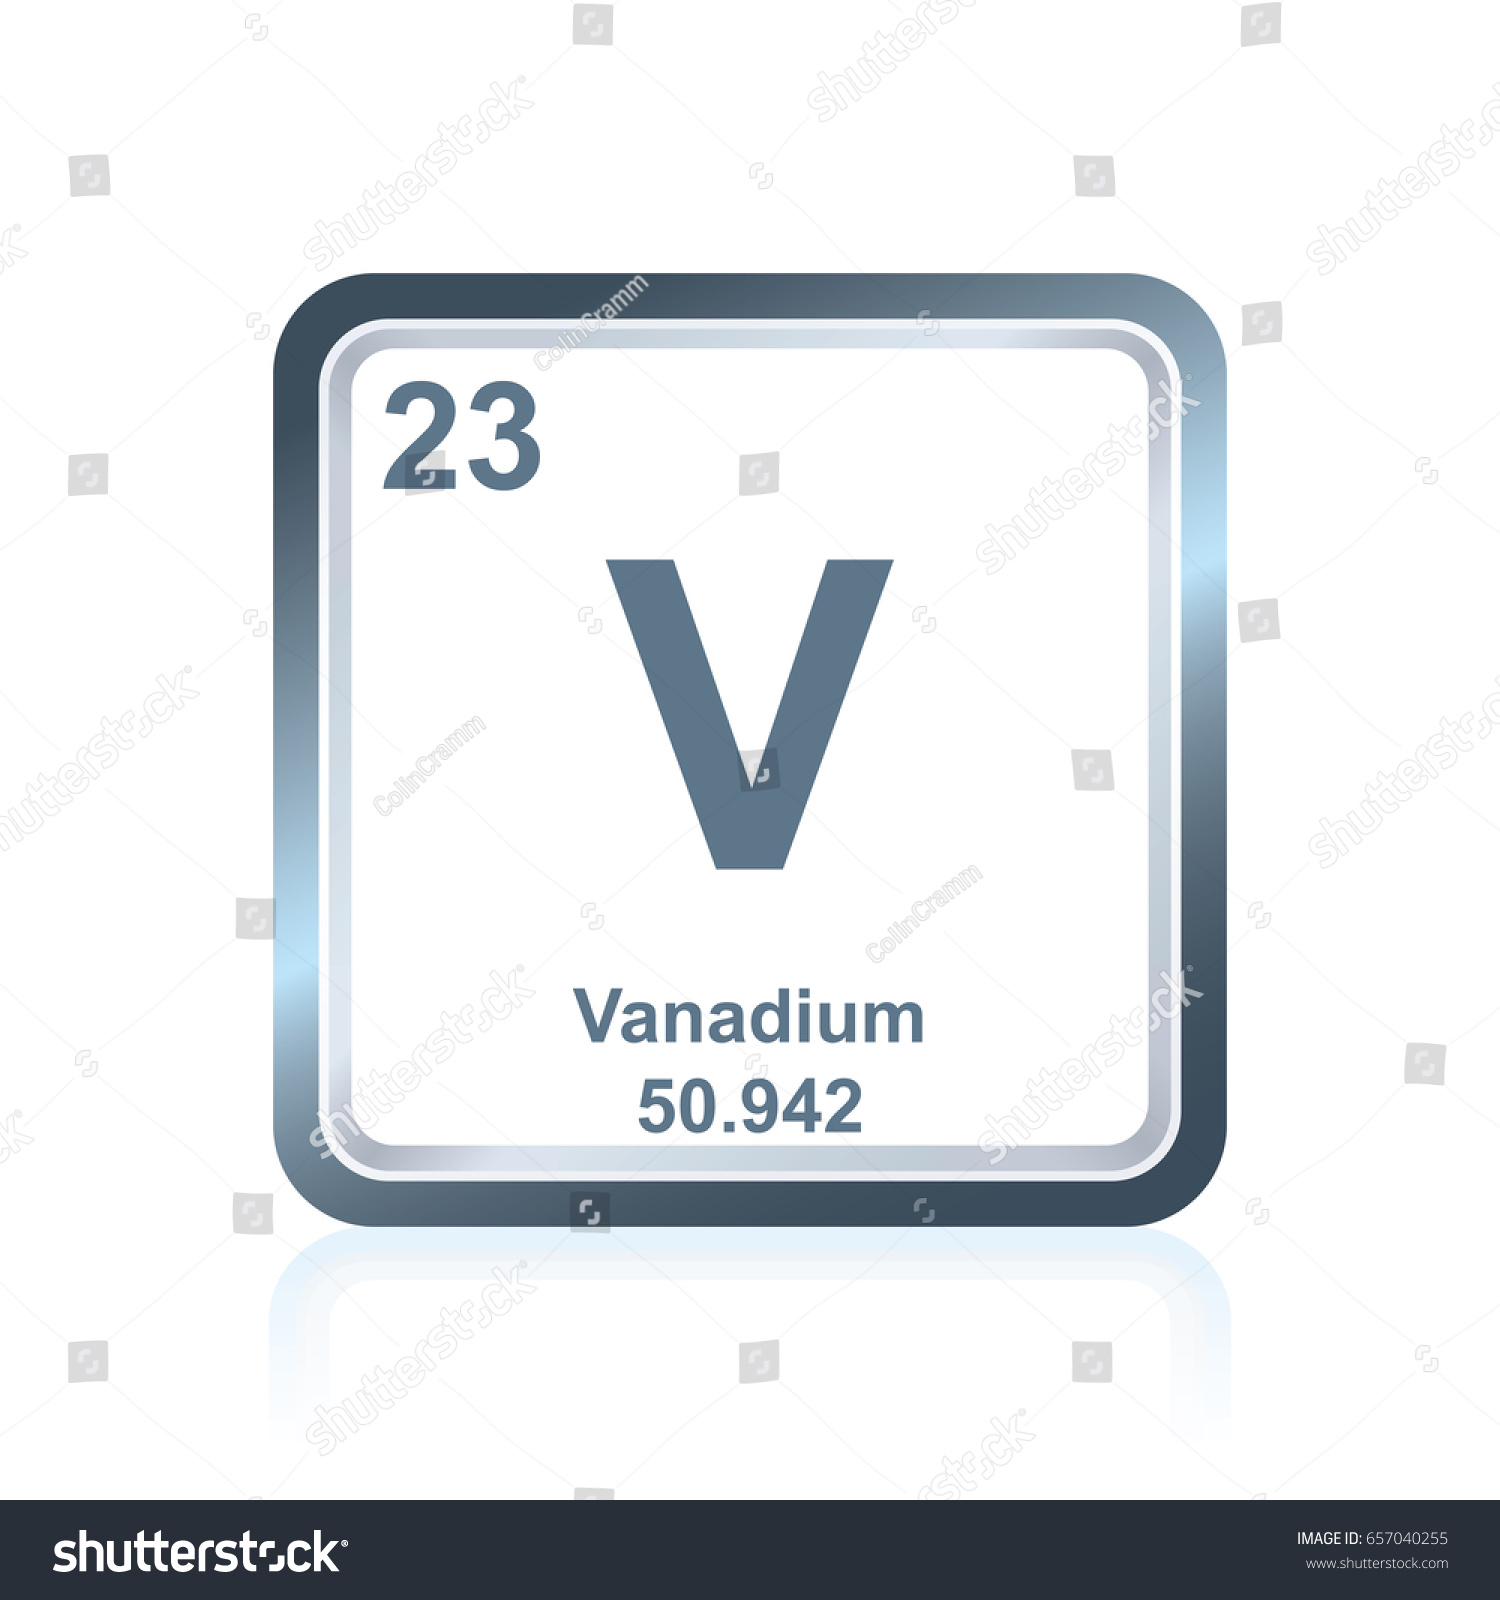 What is the symbol for magnesium on the periodic table choice what is the symbol for magnesium on the periodic table gallery symbol chemical element vanadium seen gamestrikefo Gallery